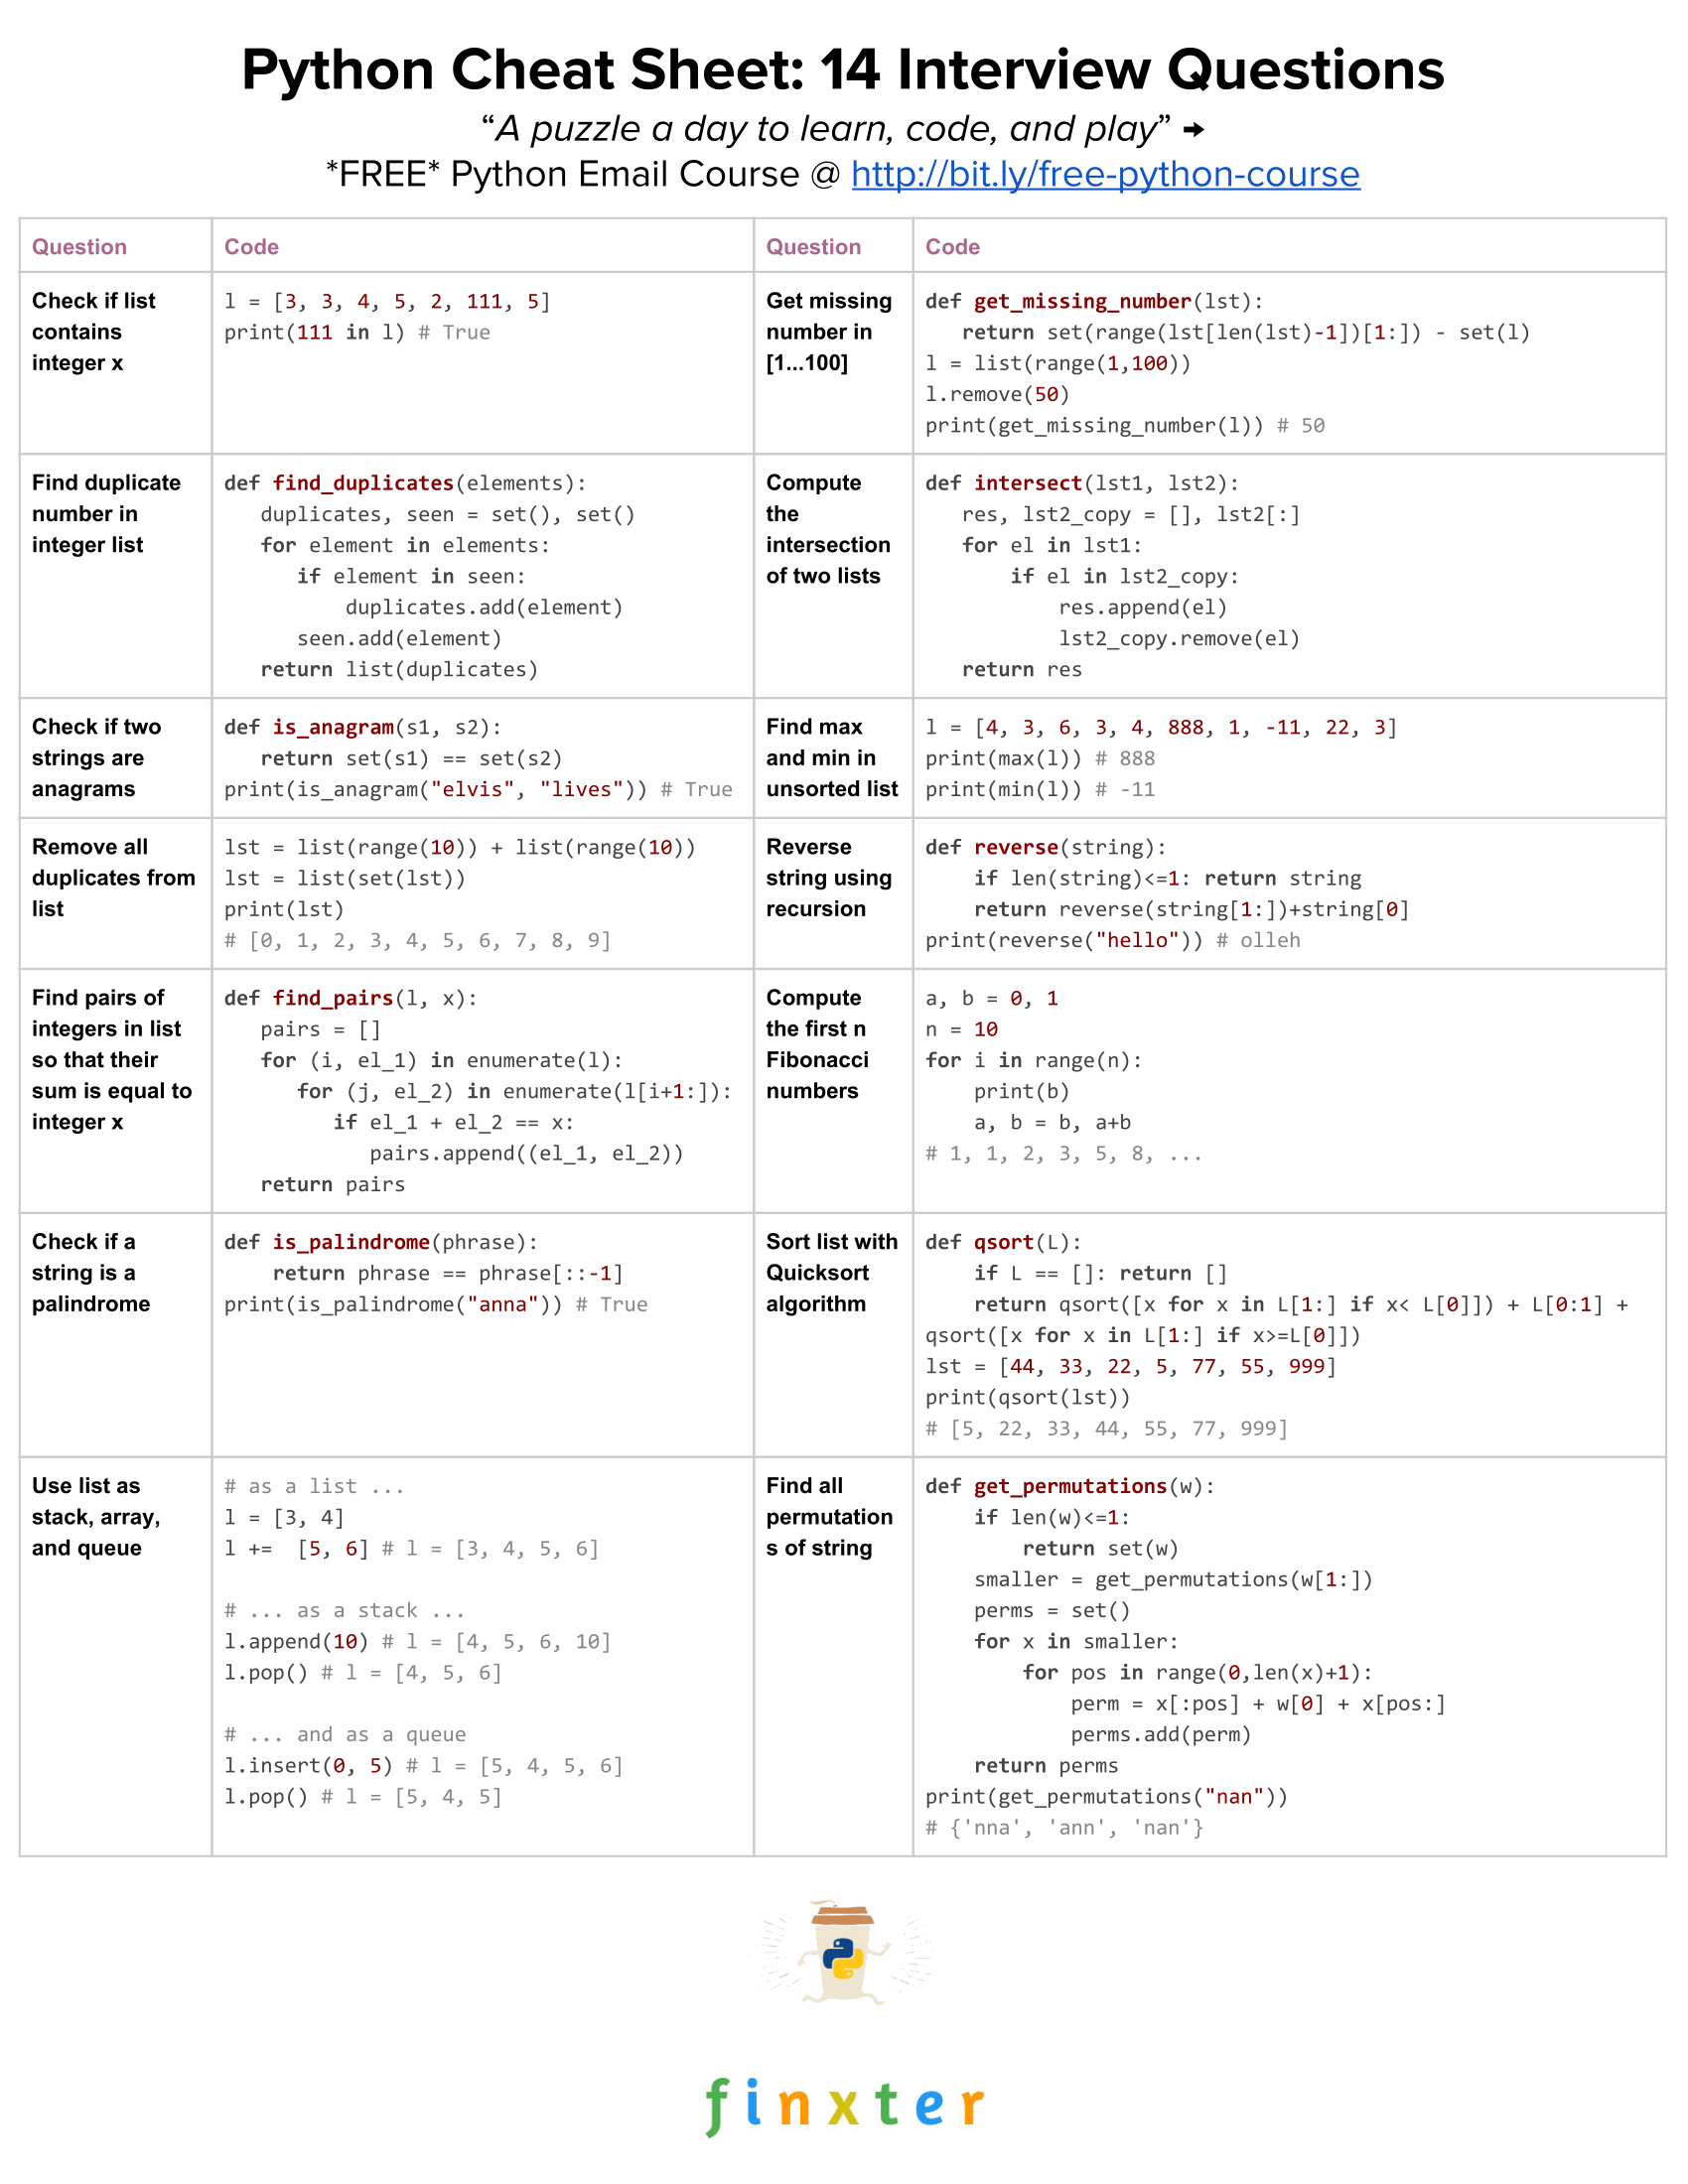 Python Programming Interview Questions